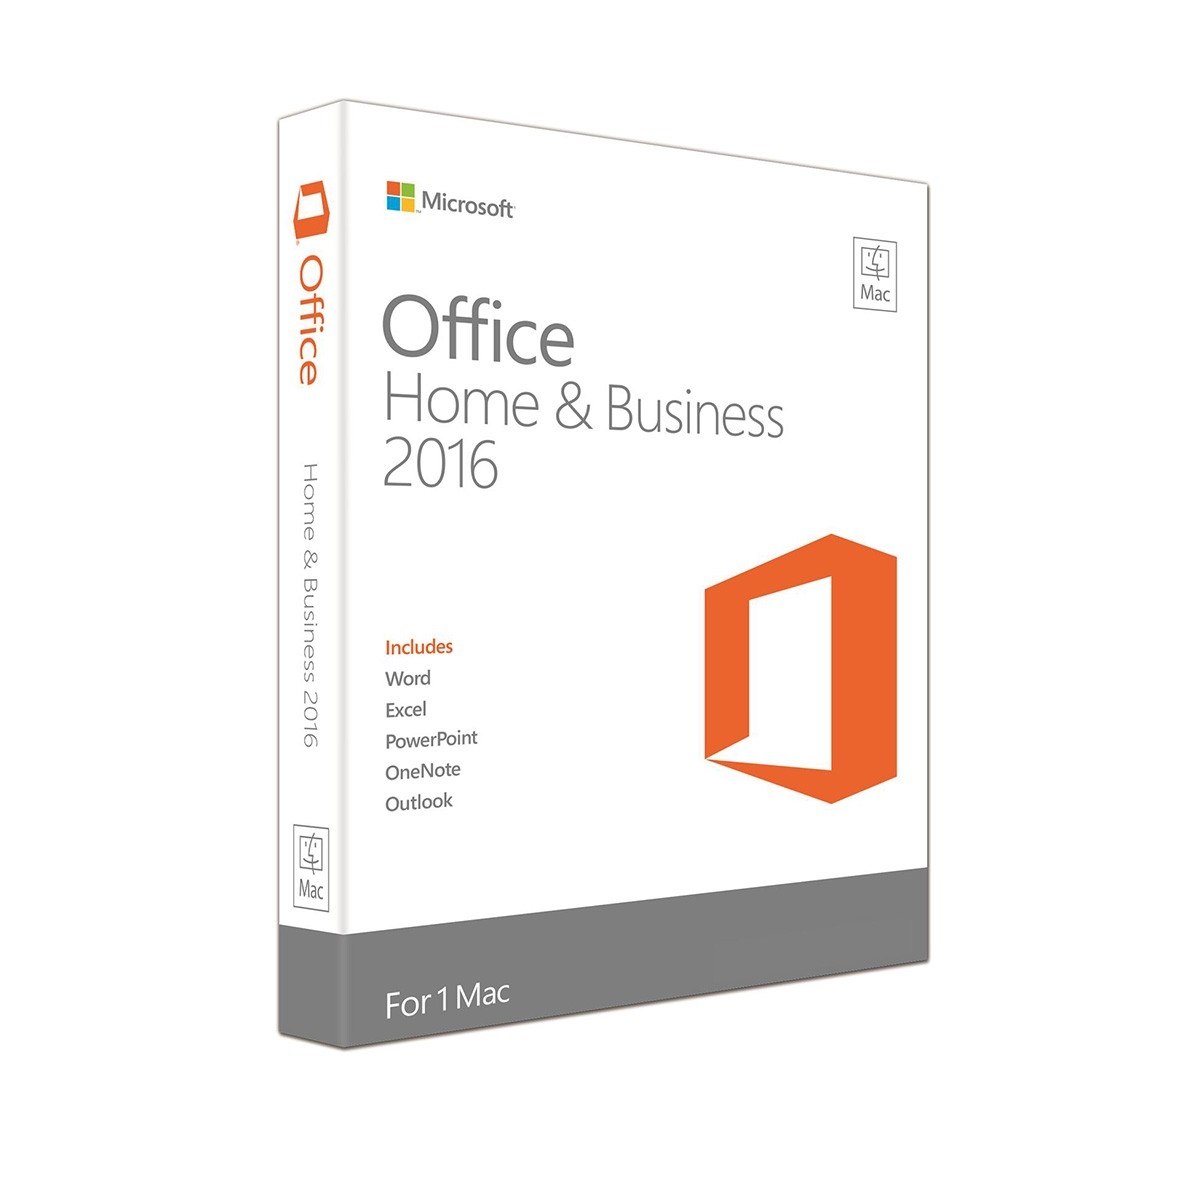 Microsoft Office Home & Business 2016 pro Mac